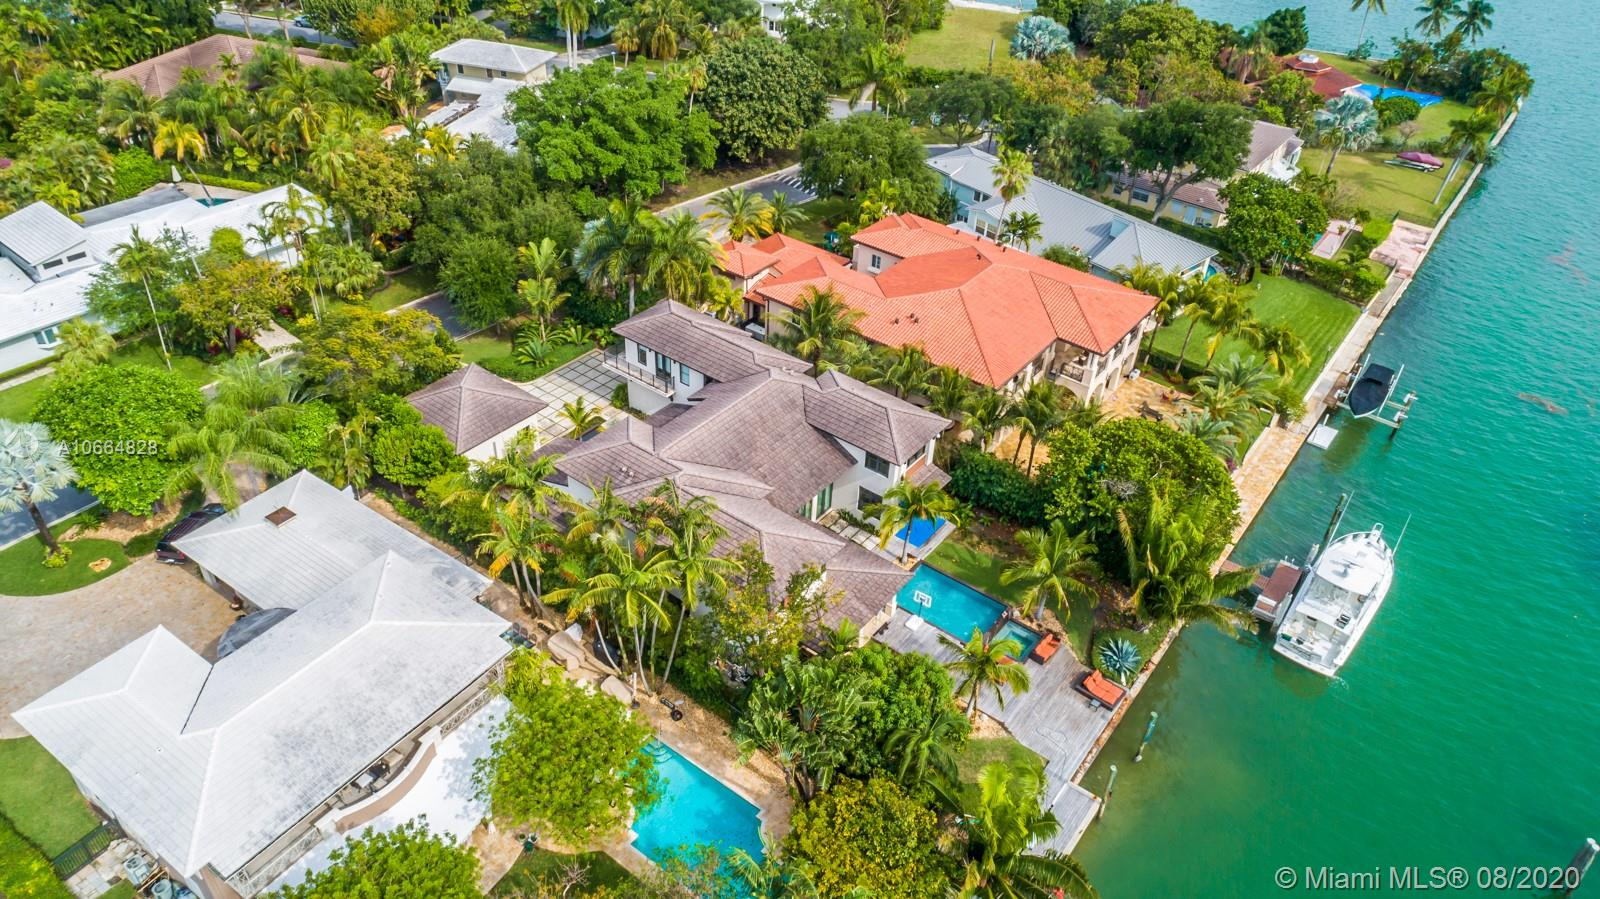 """You will not find a better waterfront Home/Community anywhere near this price. This 2011 custom built home is located in one of the safest and most exclusive gated neighborhoods in Miami. The 5 Bedroom 6 Bath 5,579 Interior Sq. Ft. Home is a modern tropical paradise. Magnificent entrance with floor to ceiling windows gives an abundant amount of natural light overlooking the pool and water. Property has 85 Ft. of water frontage and located only 5 lots from the open bay with no bridges exclusively located on the """"island"""" section of Bay Point which brings tremendous value in the community. Floor plan is perfect! Large bedrooms, split plan and very defined and open spaces perfect for a family that enjoys indoor and outdoor entertaining. Home is priced to sell and will not last."""